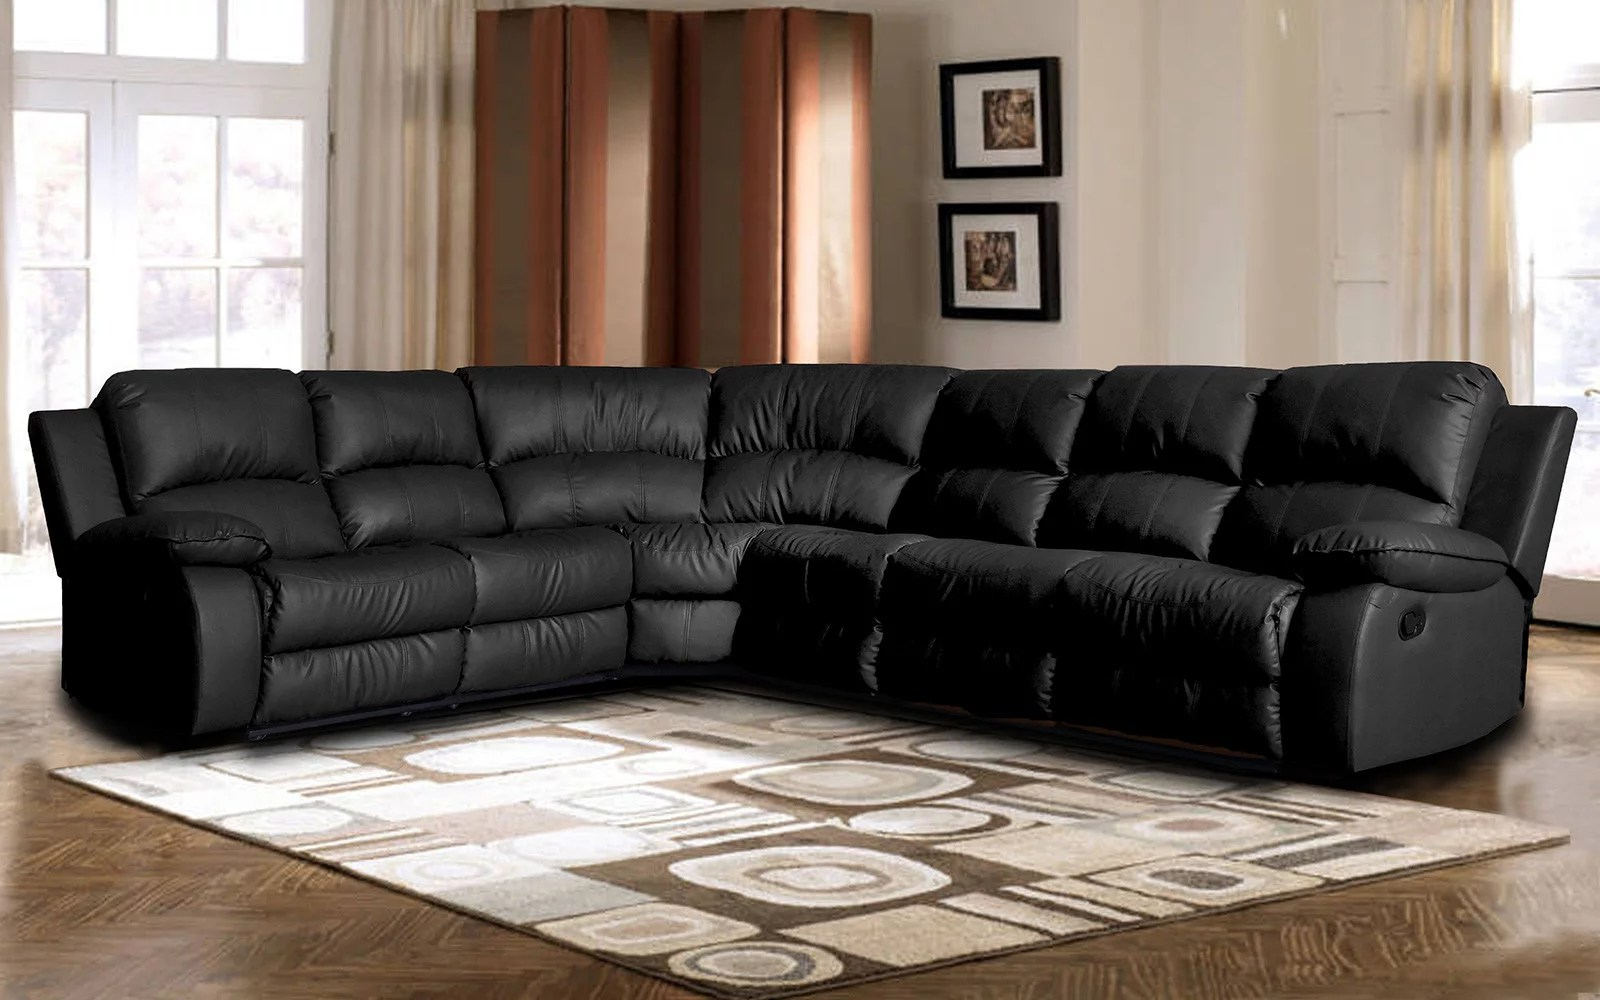 hunting chairs for big men blue velvet dining classic oversize and overstuffed corner bonded leather sectional with 2 reclining seats ...